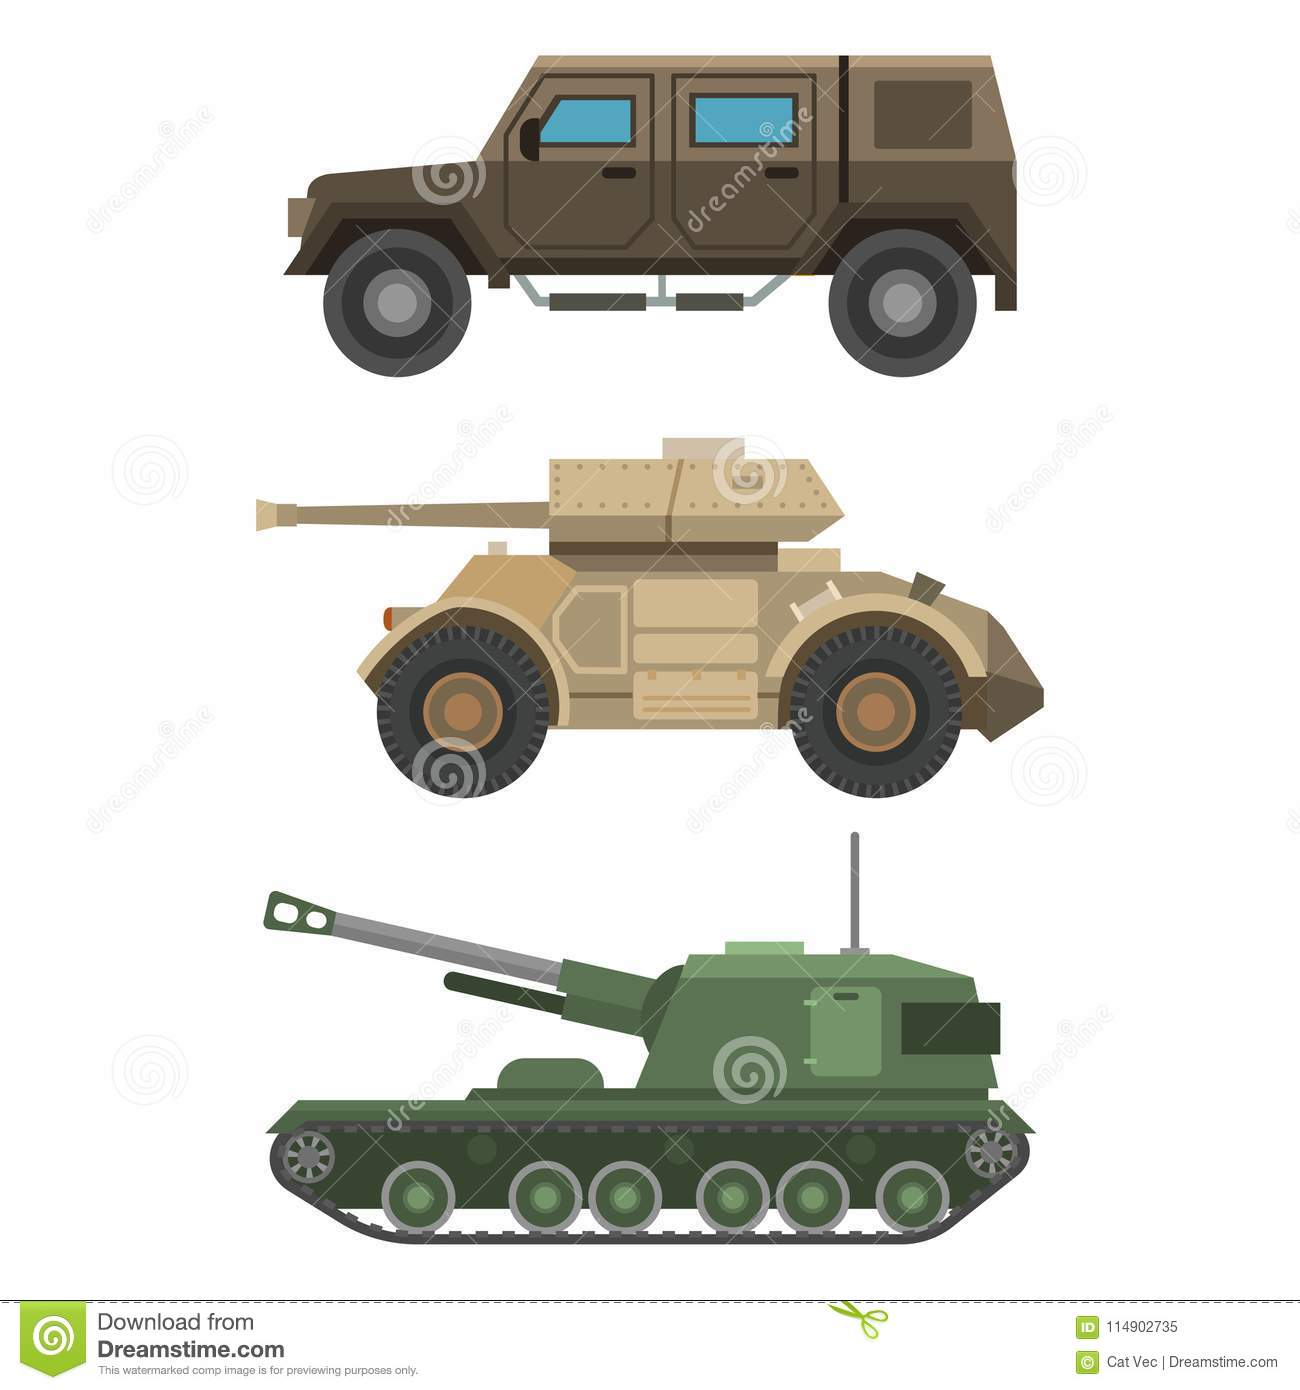 thumbs dreamstime com/z/military-transport-vector-